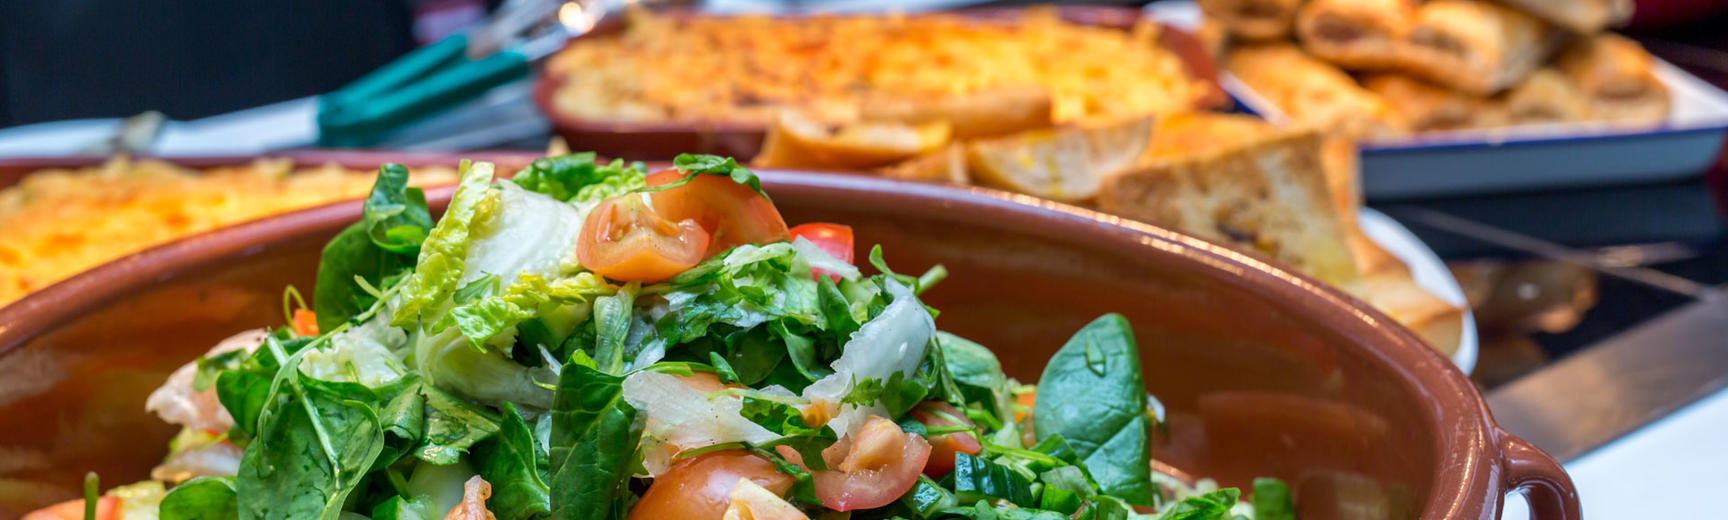 Close-up photo of a bowl of green salad with various hot food in background